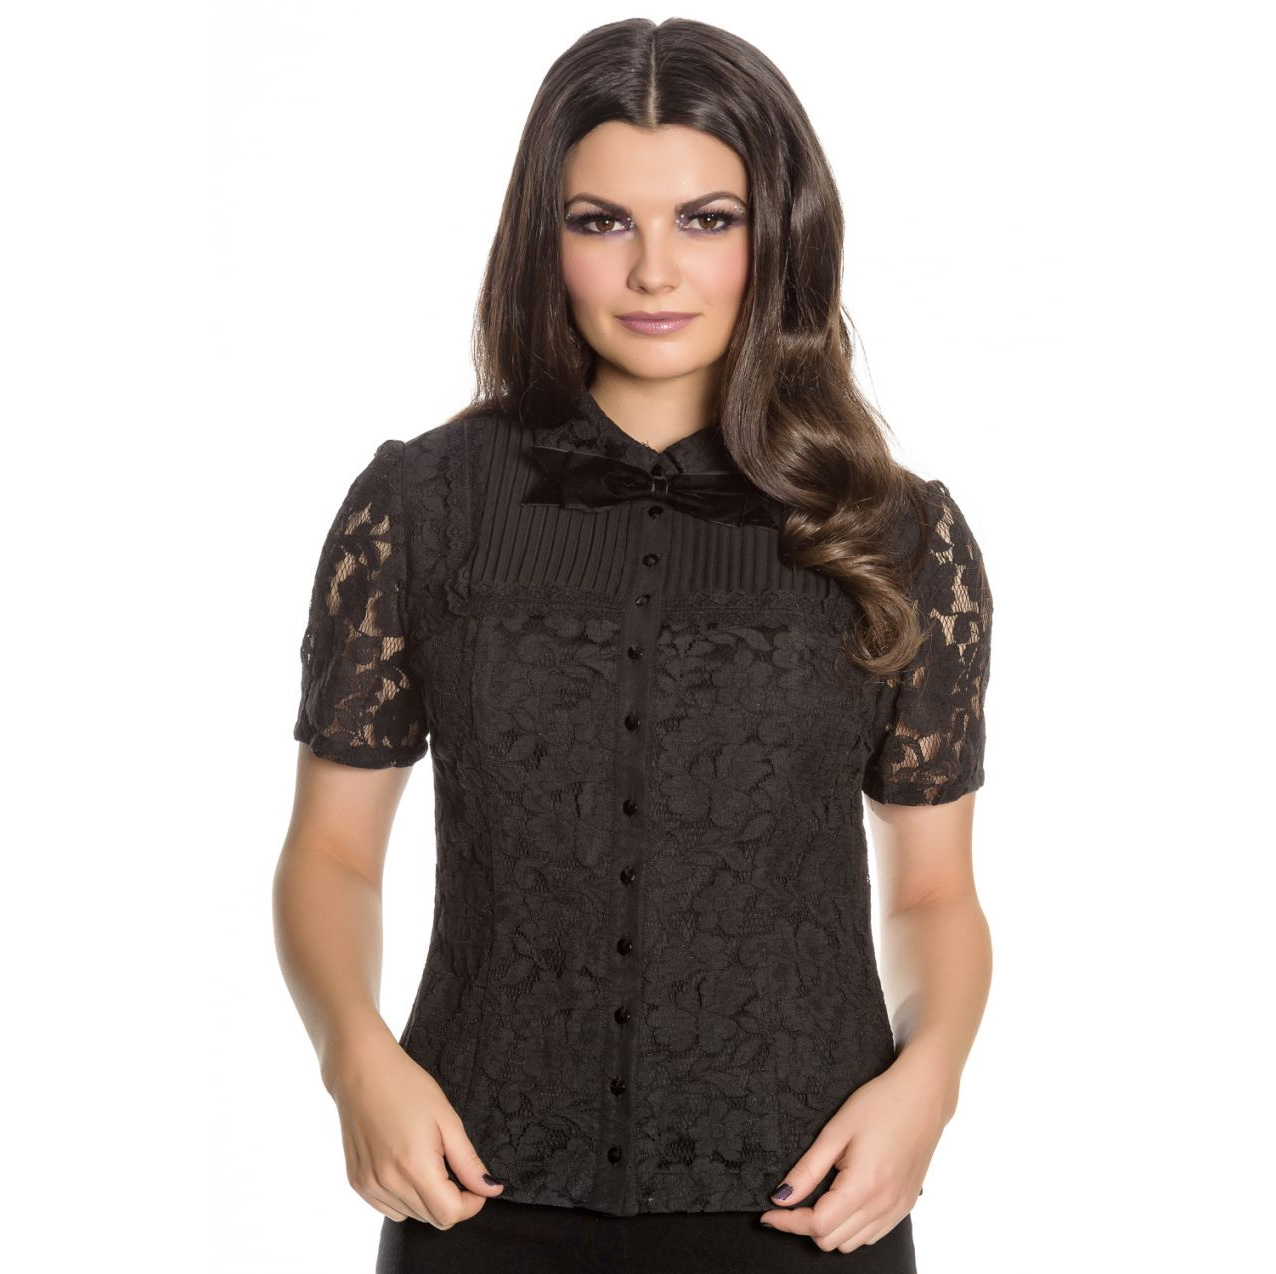 Hell-Bunny-Spin-Doctor-Vampire-Gothic-Shirt-Top-ROWENA-Lace-Blouse-All-Sizes Indexbild 11